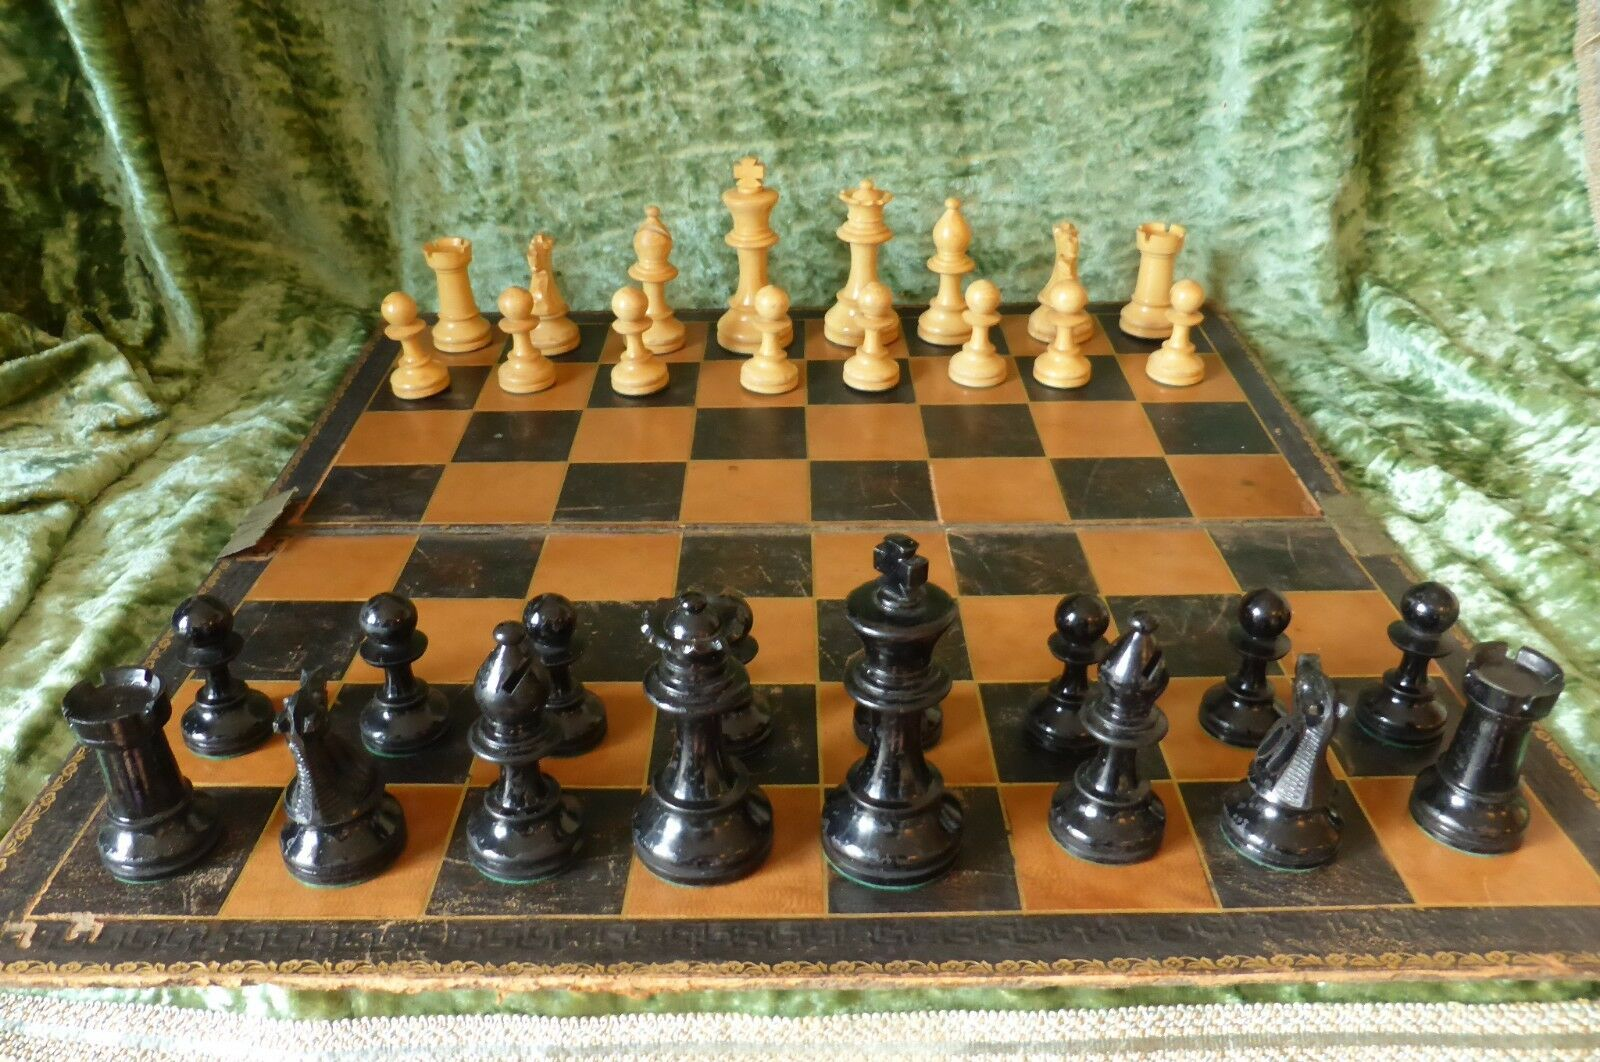 SUPERB LARGE OLD ENGLISH PRO'  CHESS SET - WEIGHTED ORIGINAL BOX - KING 3 3 4' T